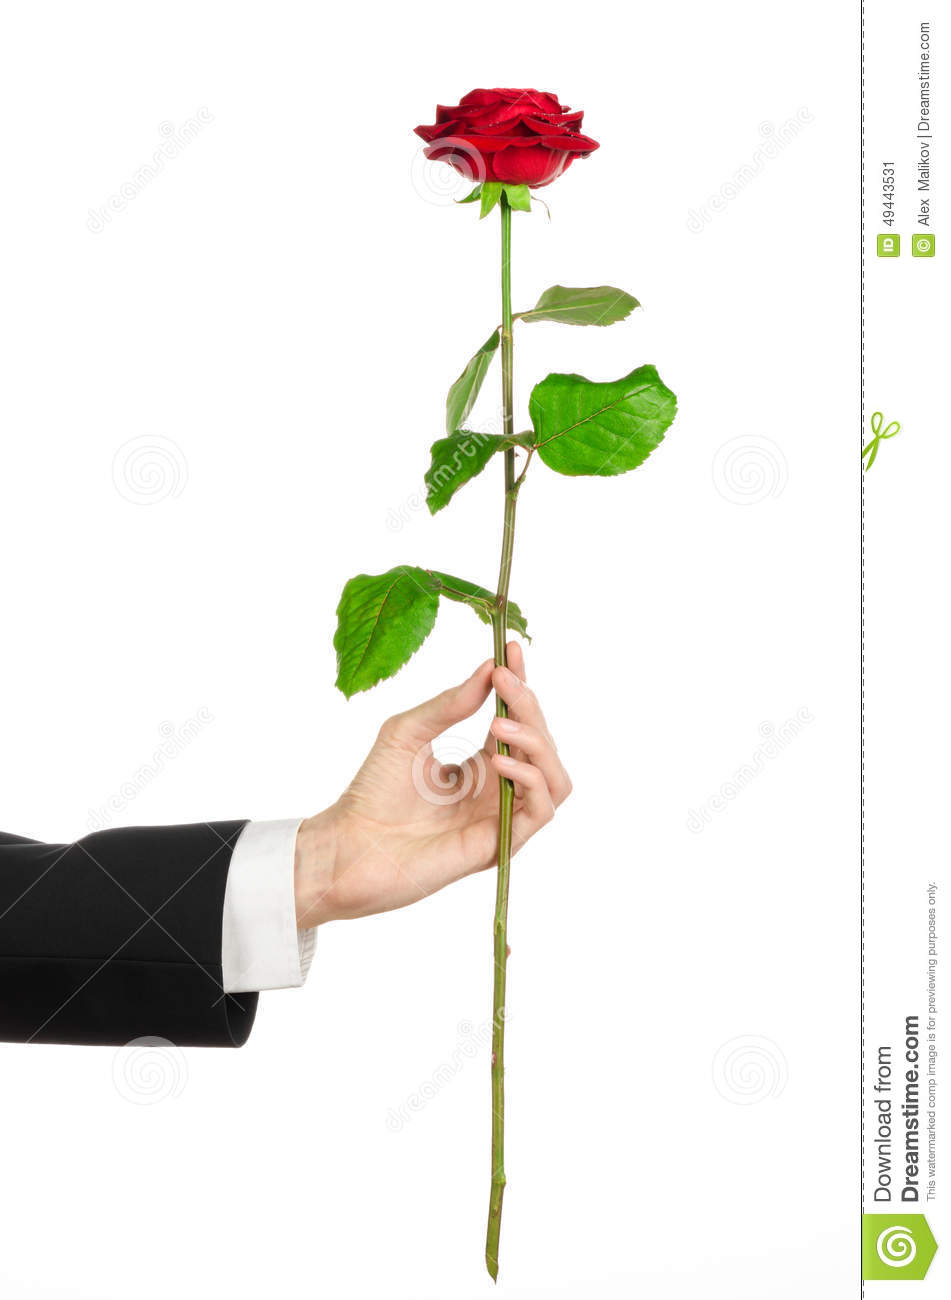 Valentine s Day and Women s Day theme: man s hand in a suit holding a red rose isolated on white background in studio